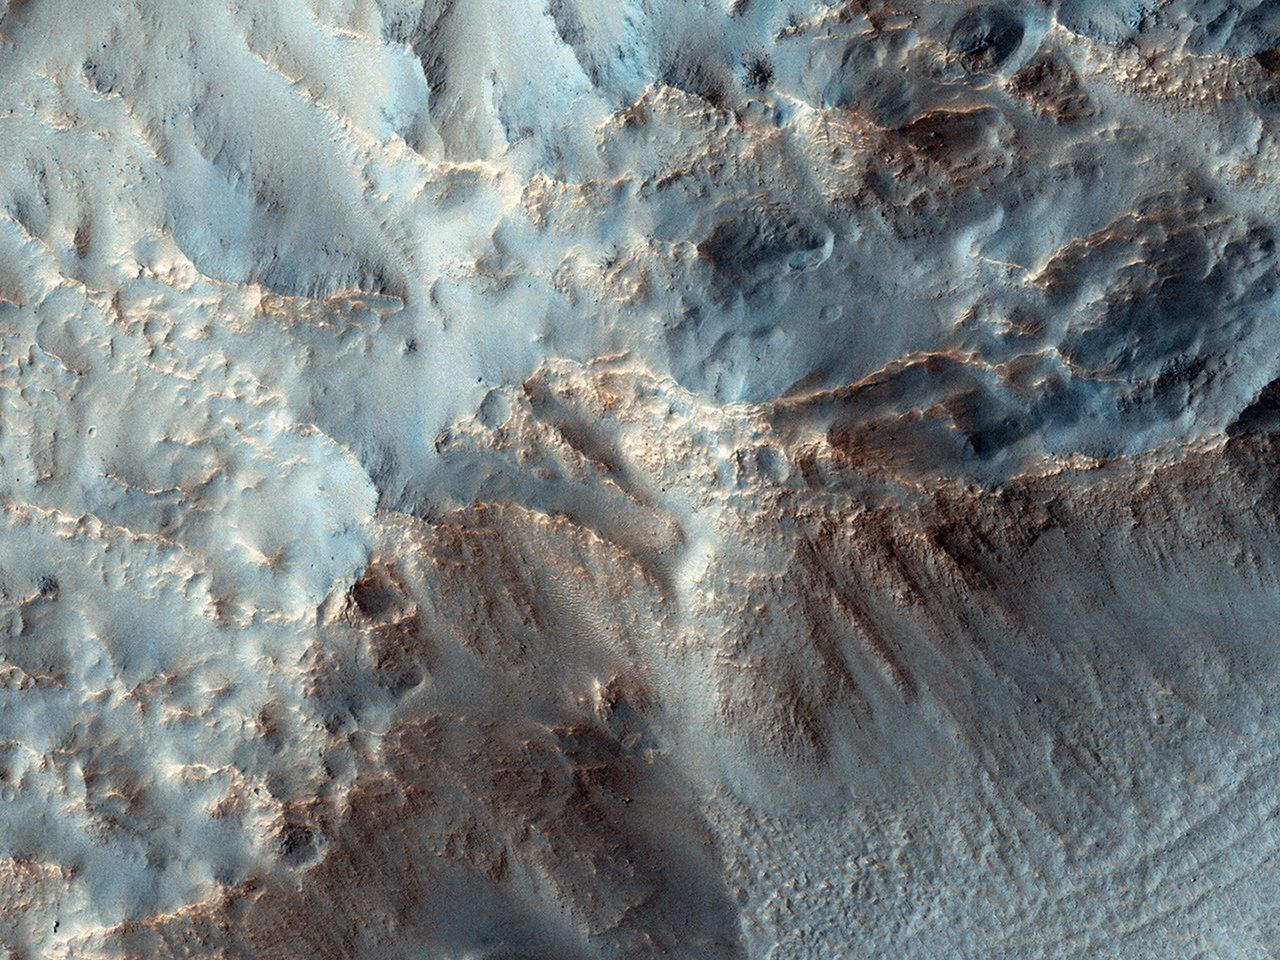 Southeast Rim of Hale Crater